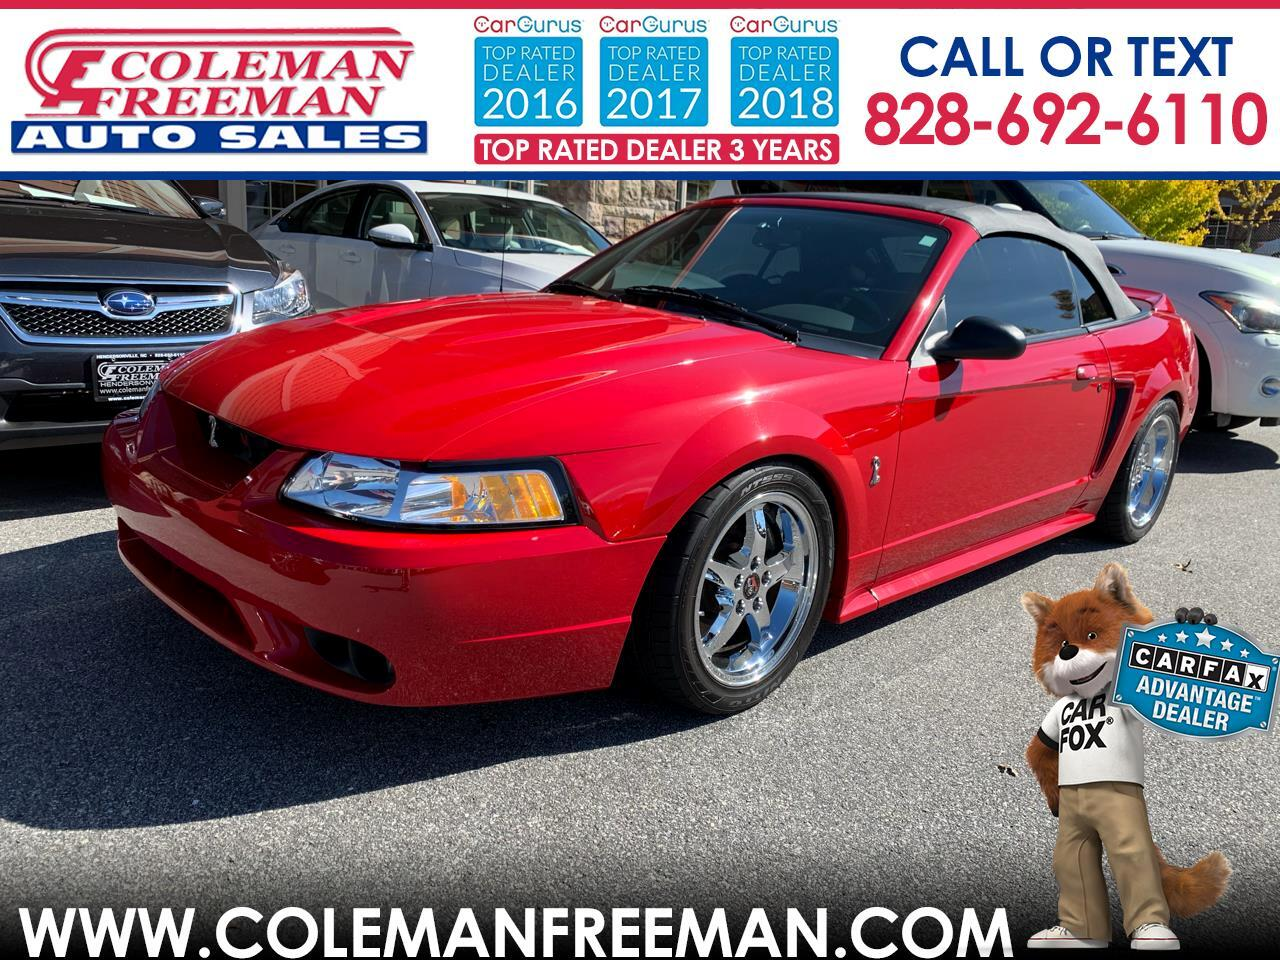 Ford Mustang 2dr Convertible SVT Cobra 1999